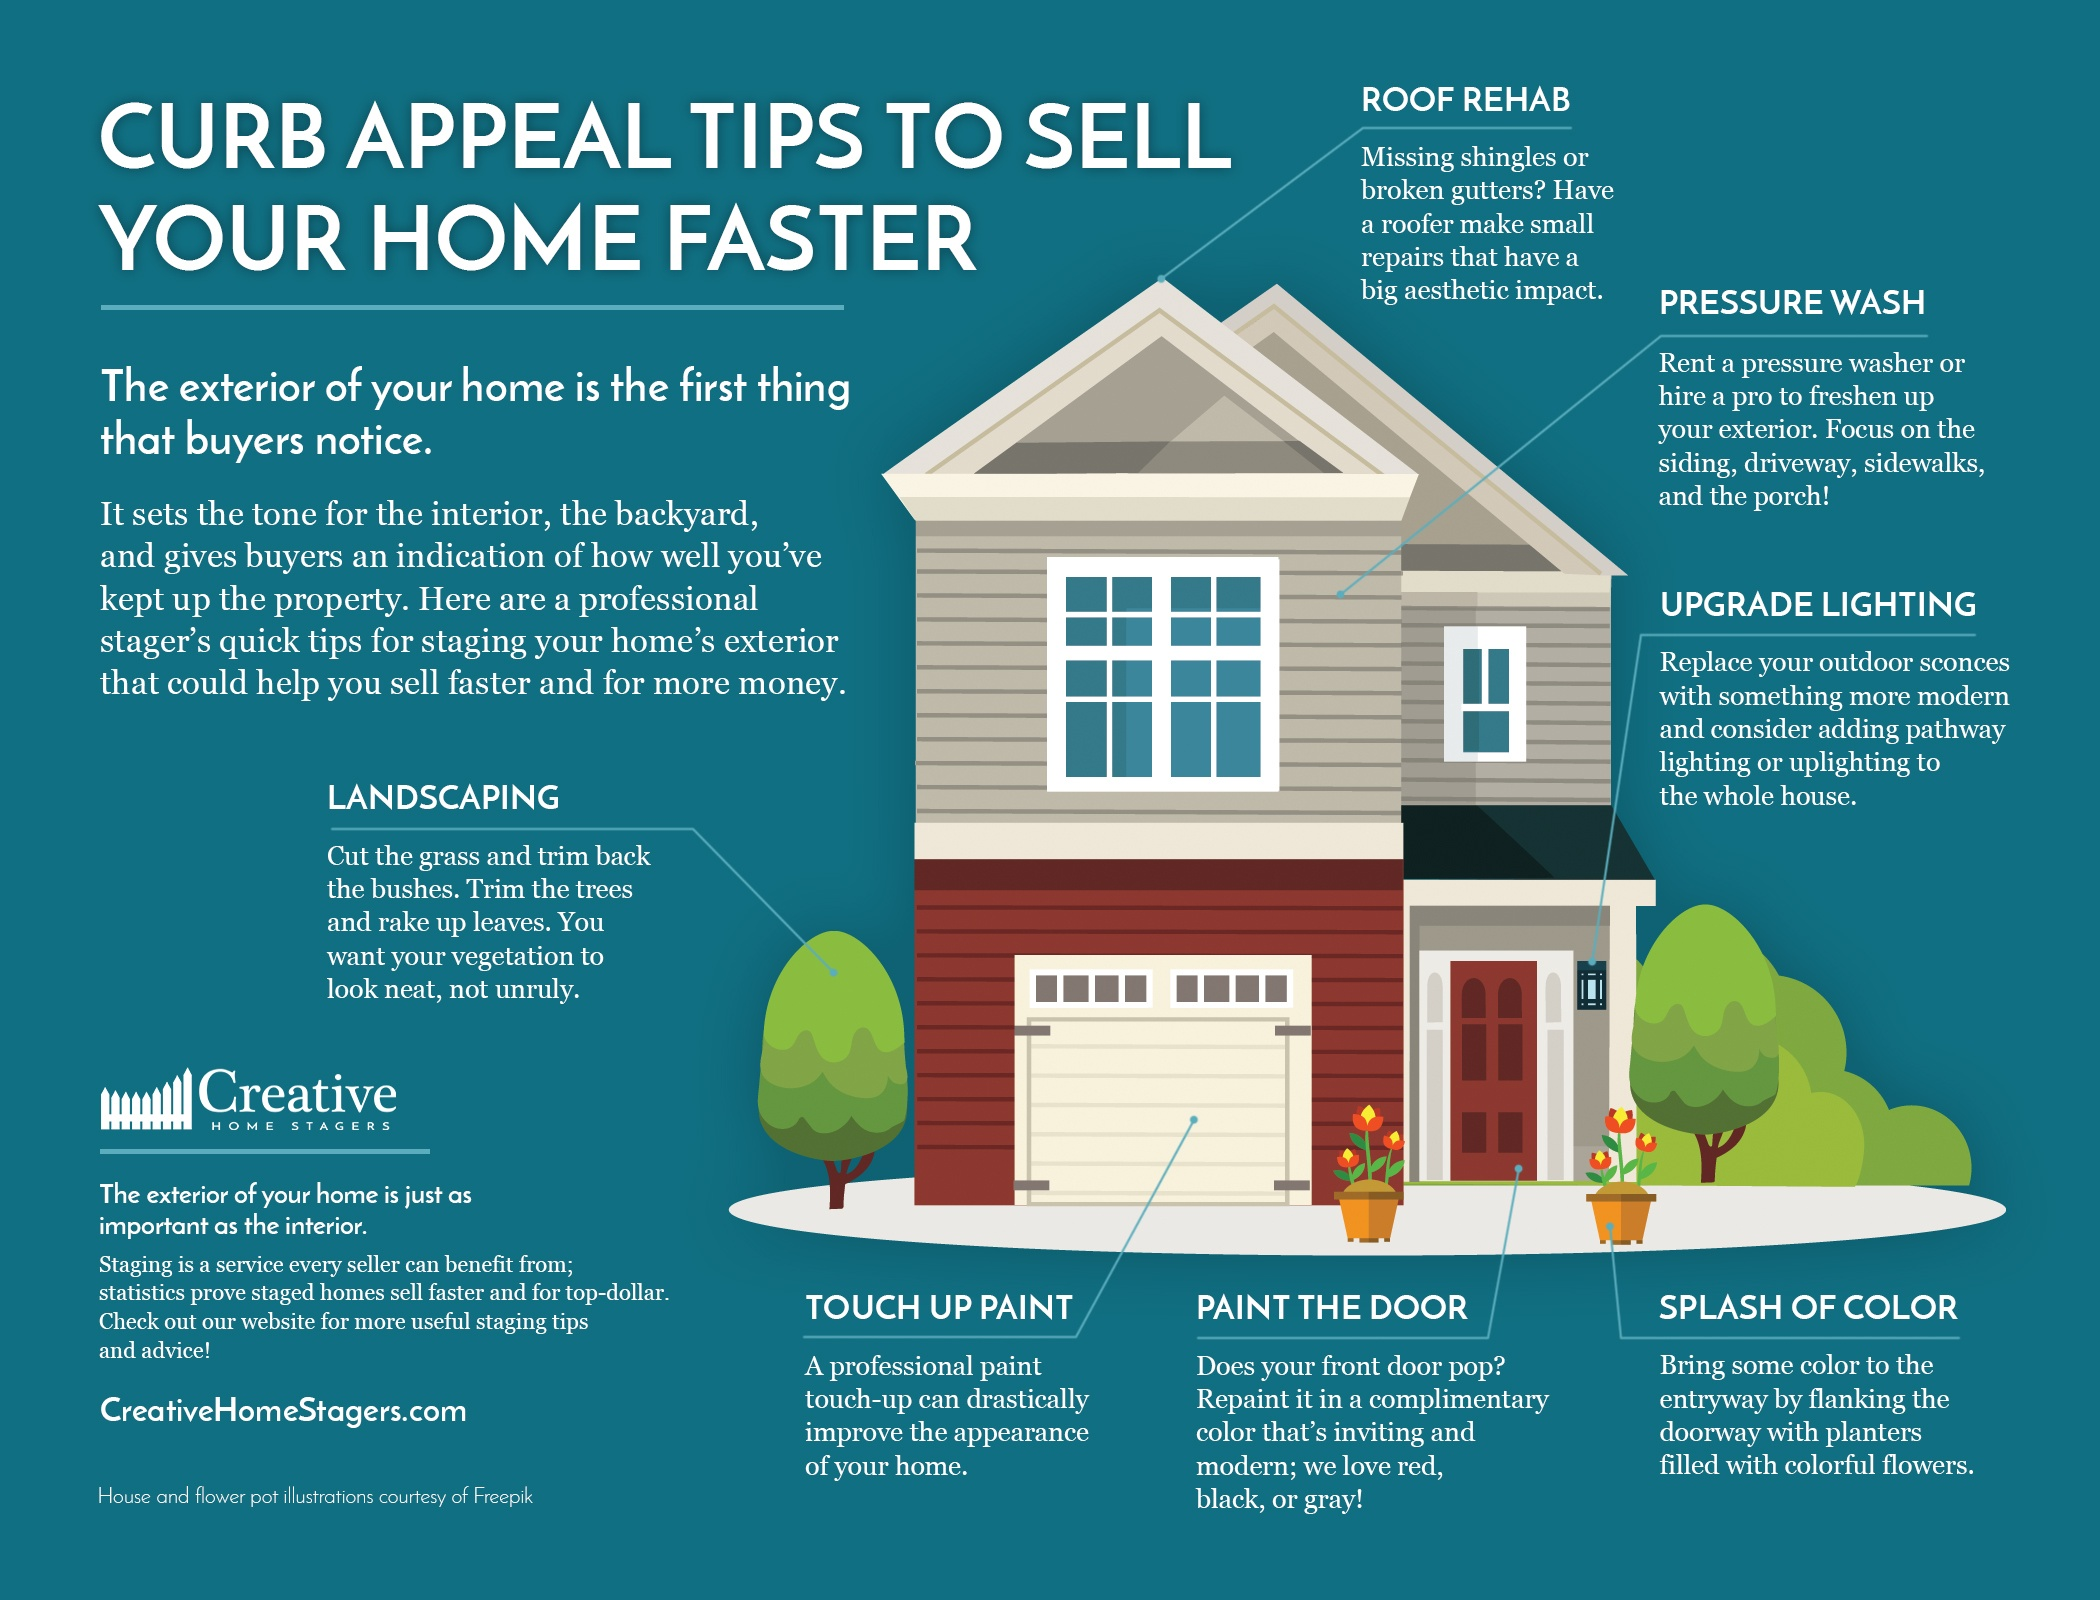 Curb Appeal Tips to Sell Your Home Faster Infographic.jpg